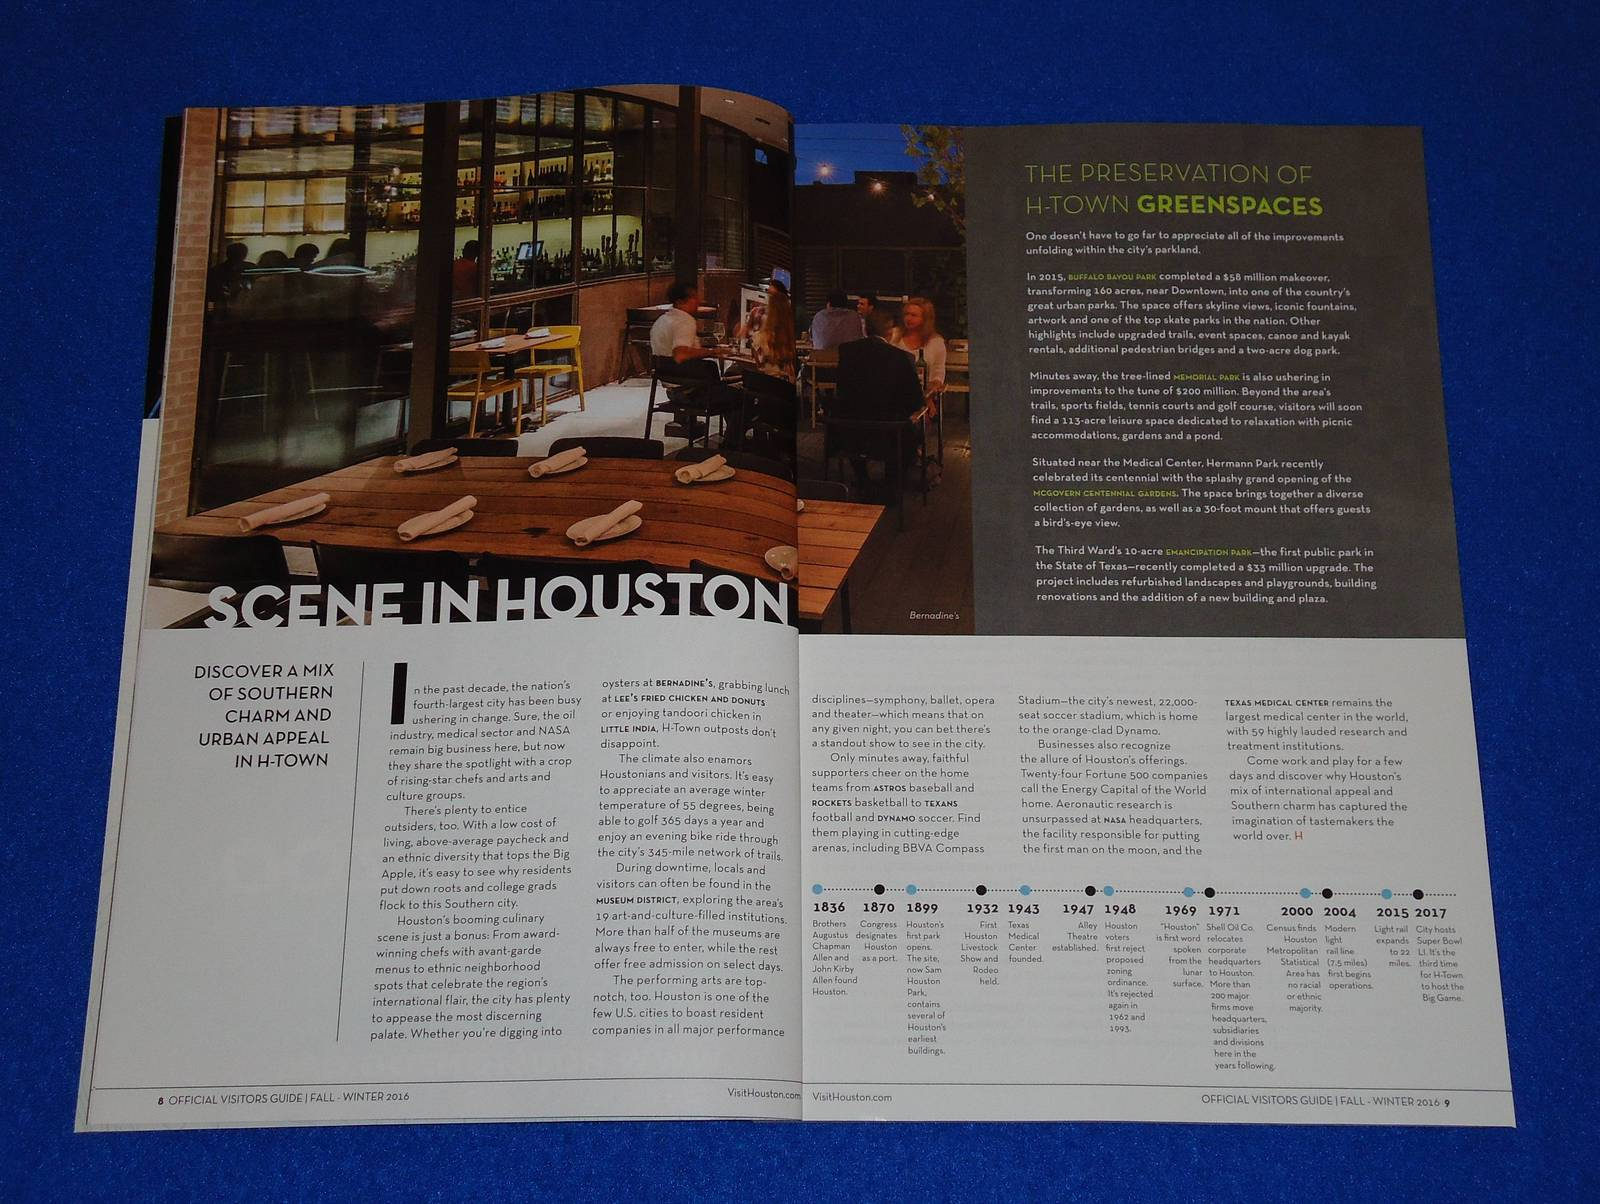 *NEW* VISIT HOUSTON OFFICIAL VISITOR'S GUIDE CITY DINING & MORE REFERENCE *MAP*